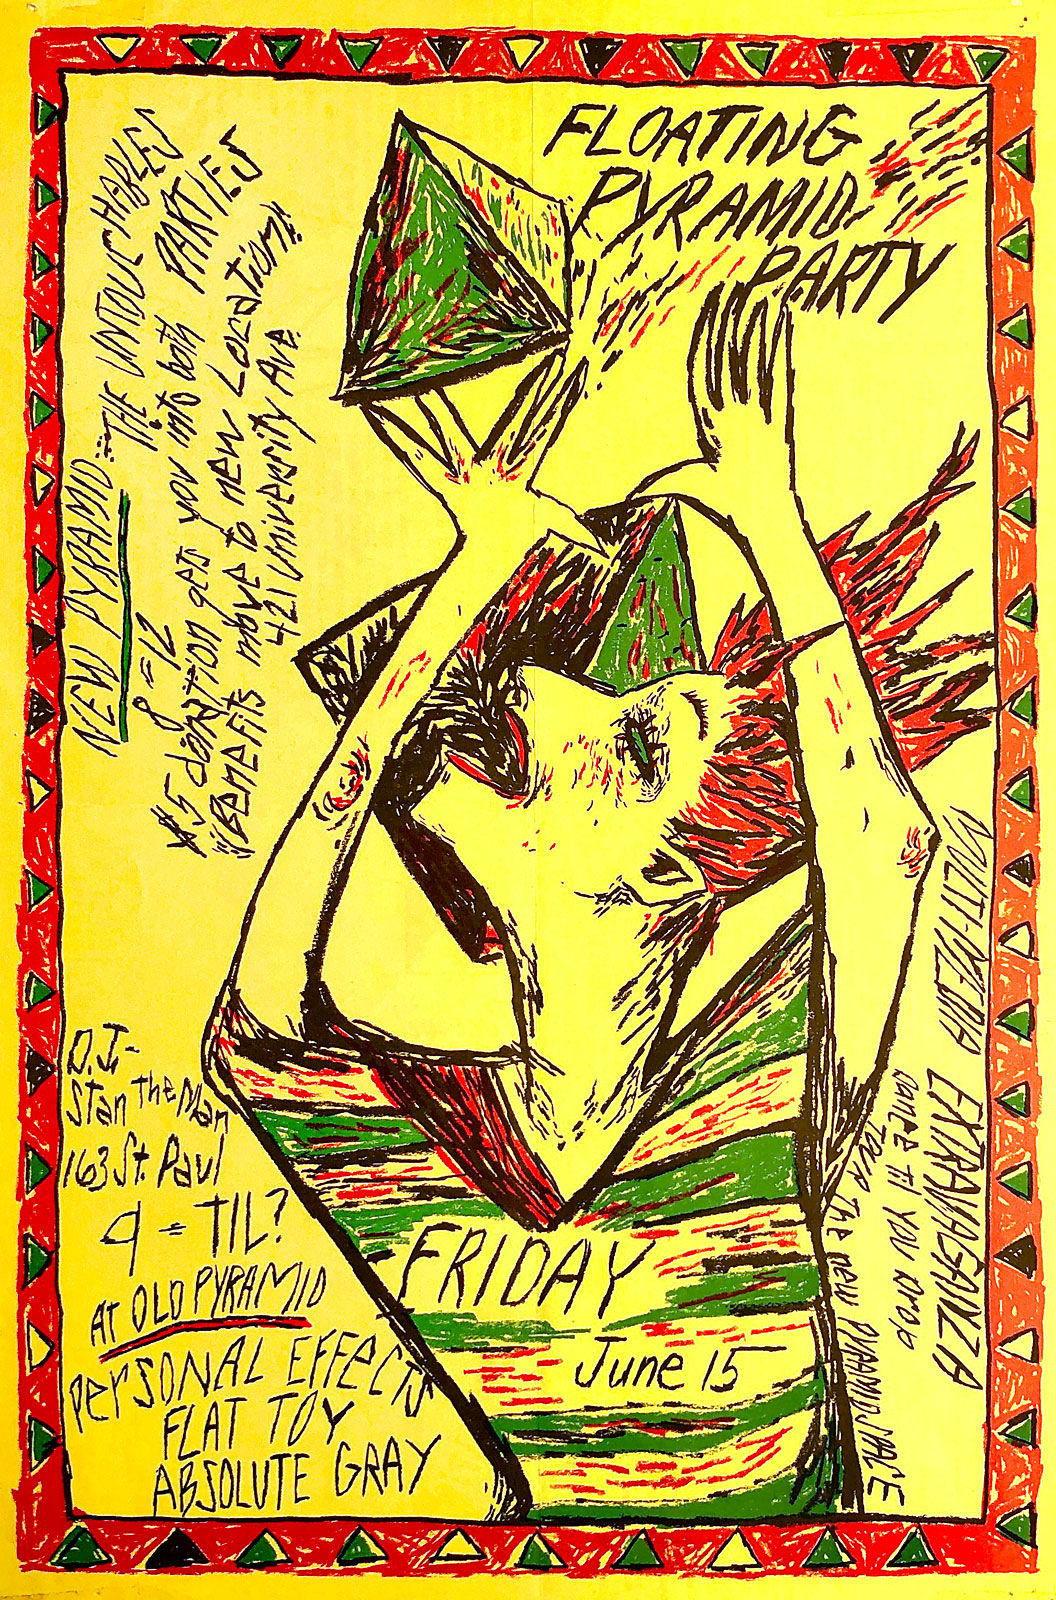 Poster for Personal Effects, Flat Toy and Absolute Grey at the Pyramid Art Center in Rochester, New York on 06.15.1984. Poster designed by Julianna Furlong Williams.